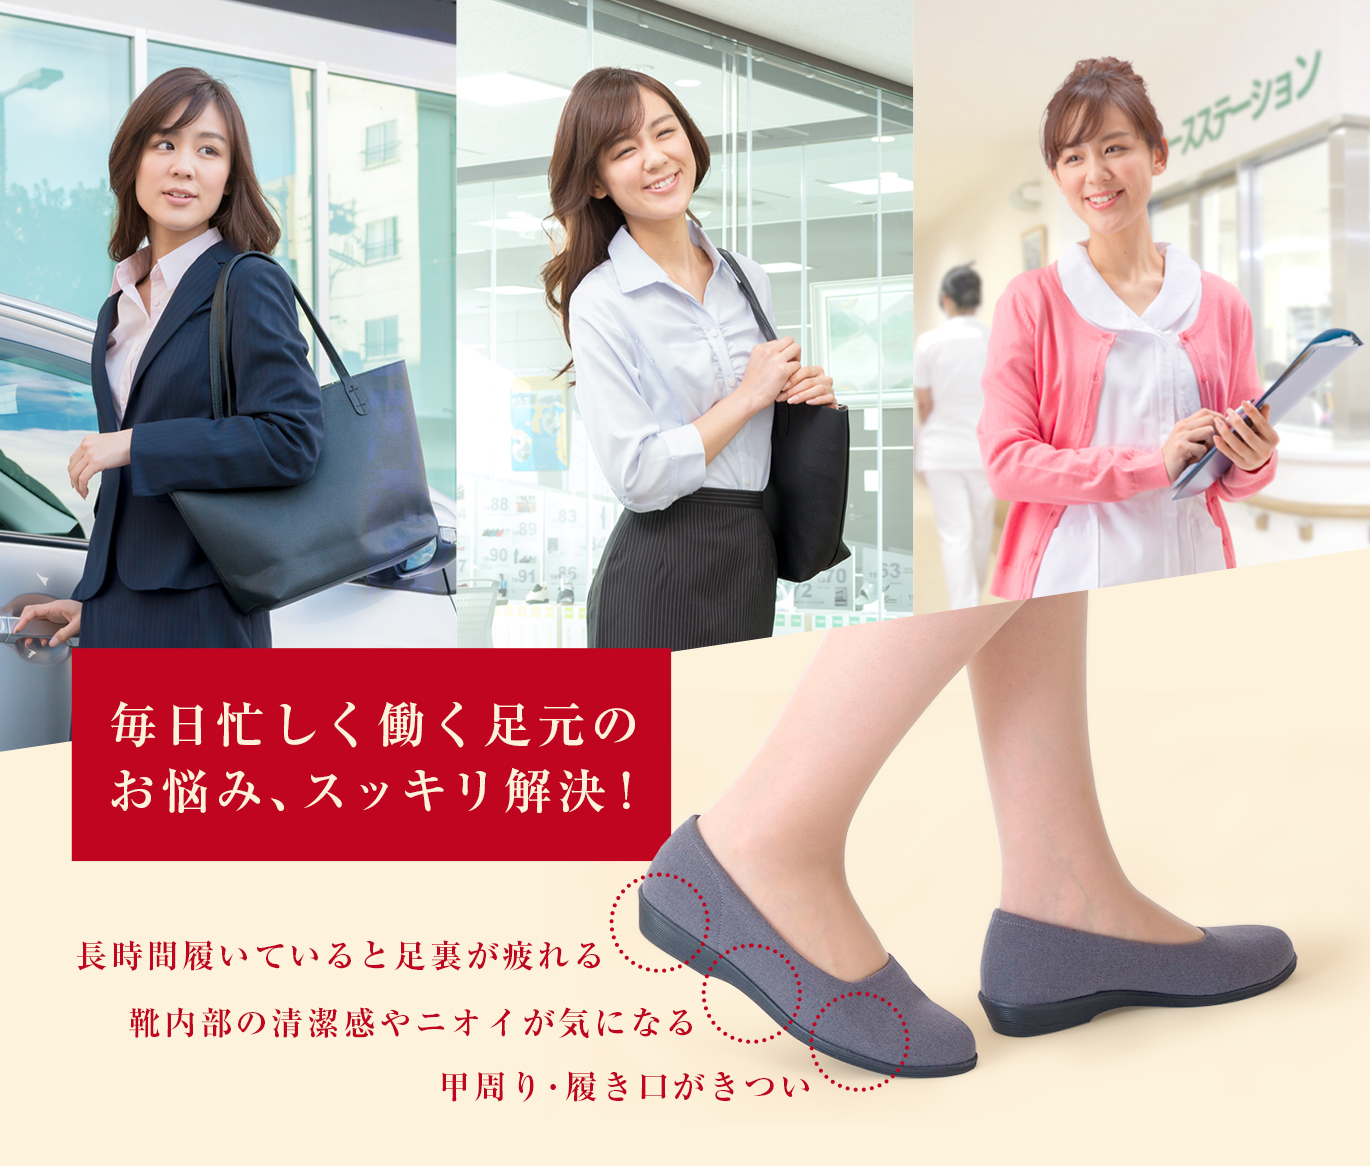 Solve the worries of the feet to work! Functionality to the excellent all-purpose pumps and anyway comfortable fatigue easy to move sandals!